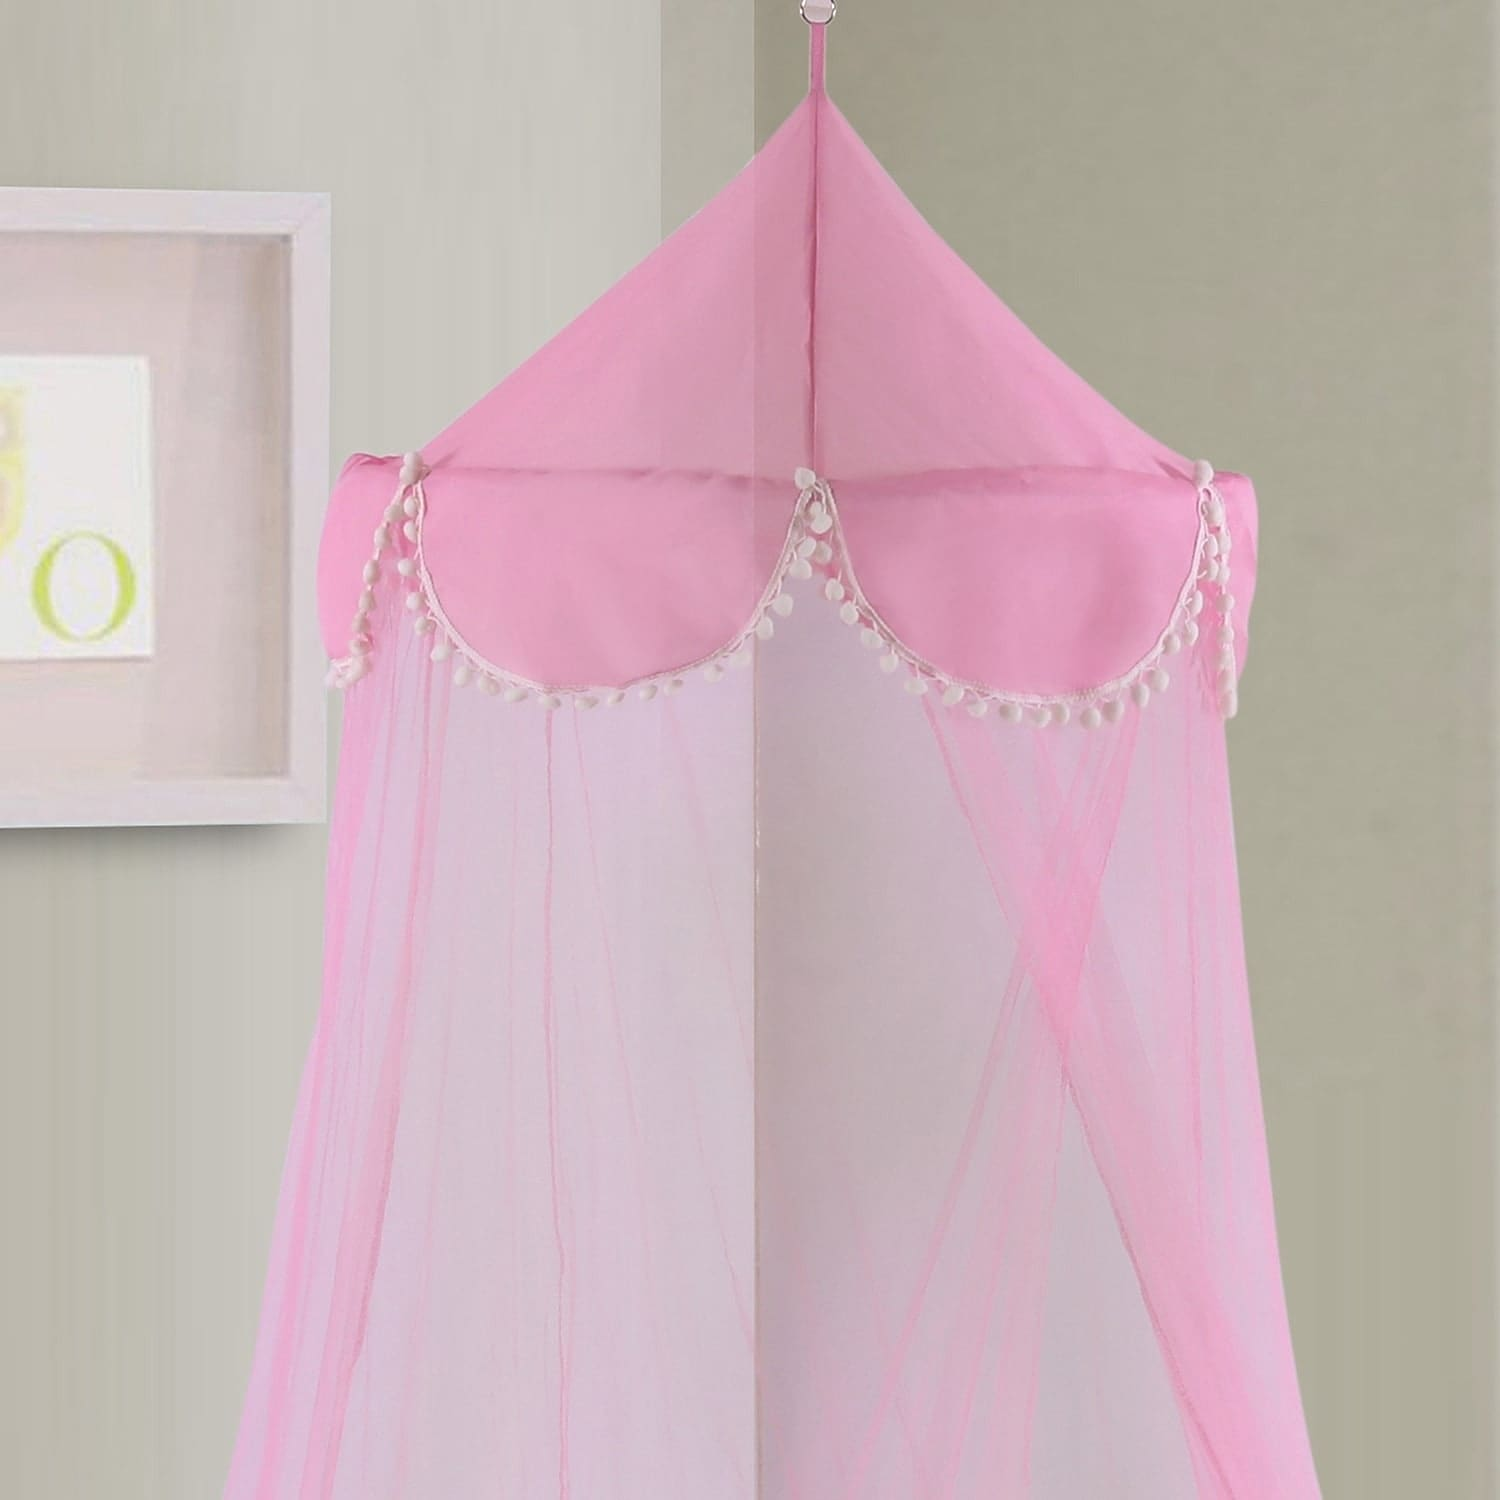 Sheer Pom Pom Collapsible Hoop Kids Bed Canopy (Pink), Si...